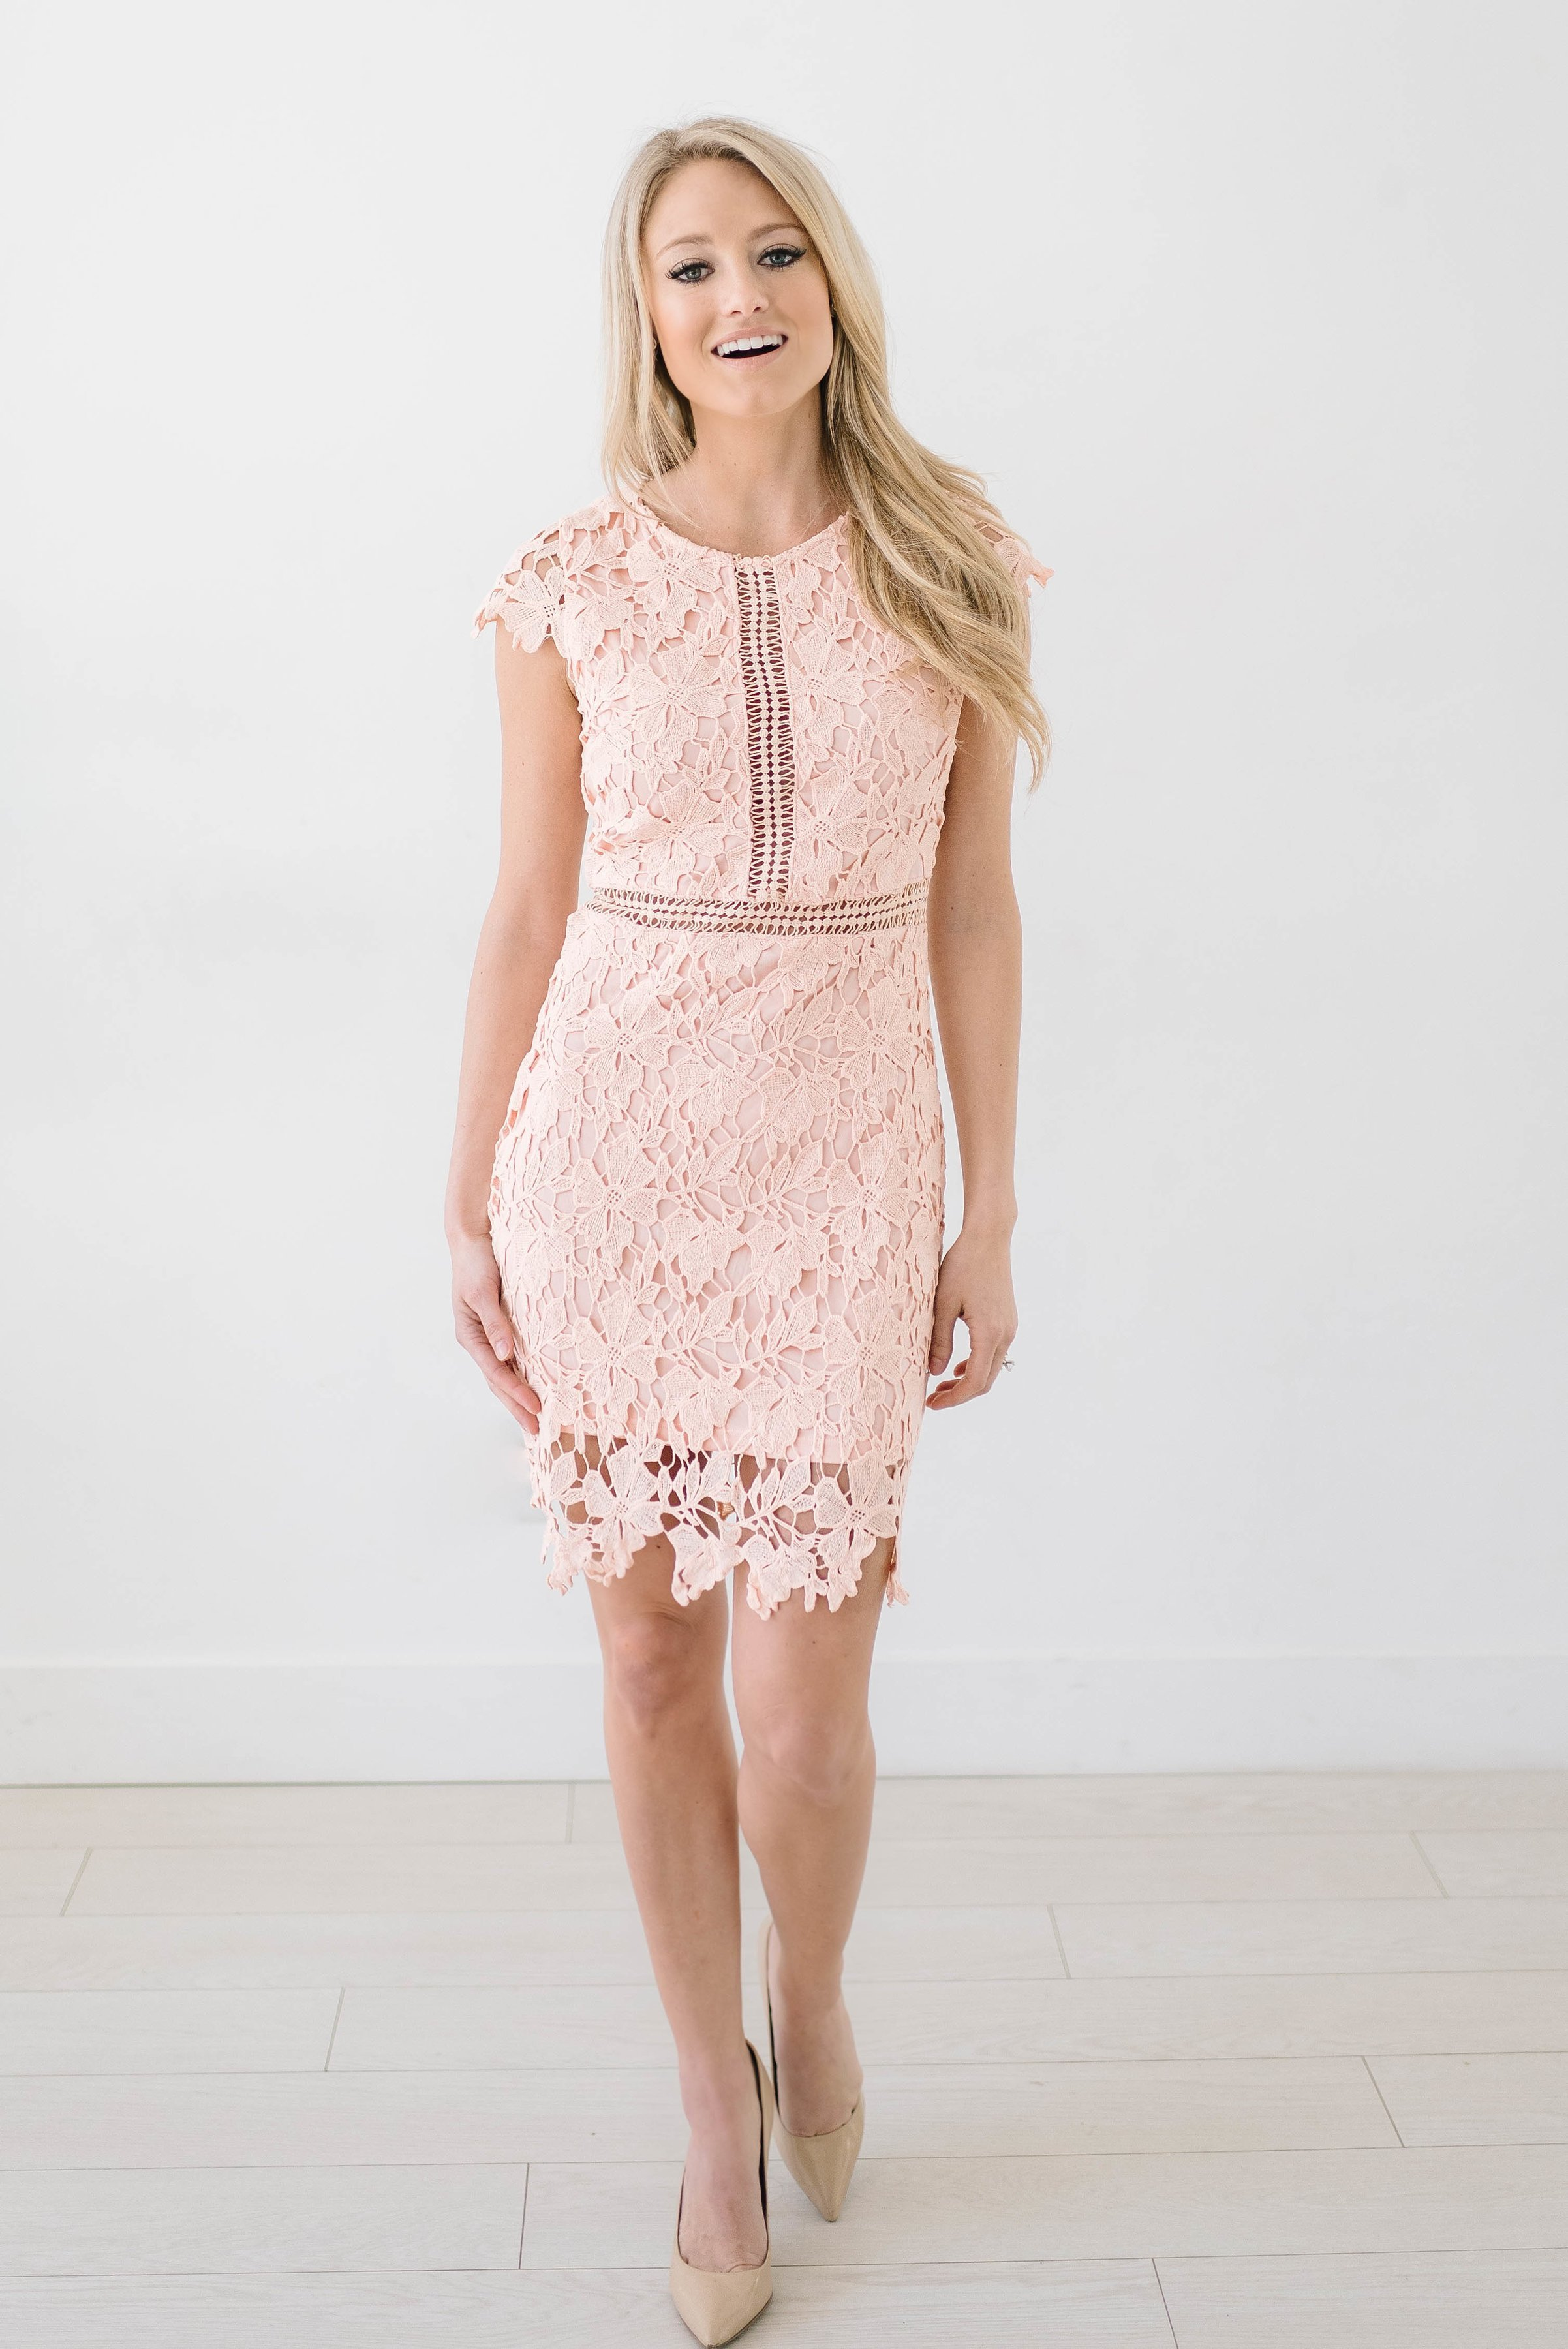 Pink see through lace dress  Alicia Dress  Womenus Fashion Inspo  Pinterest  Products